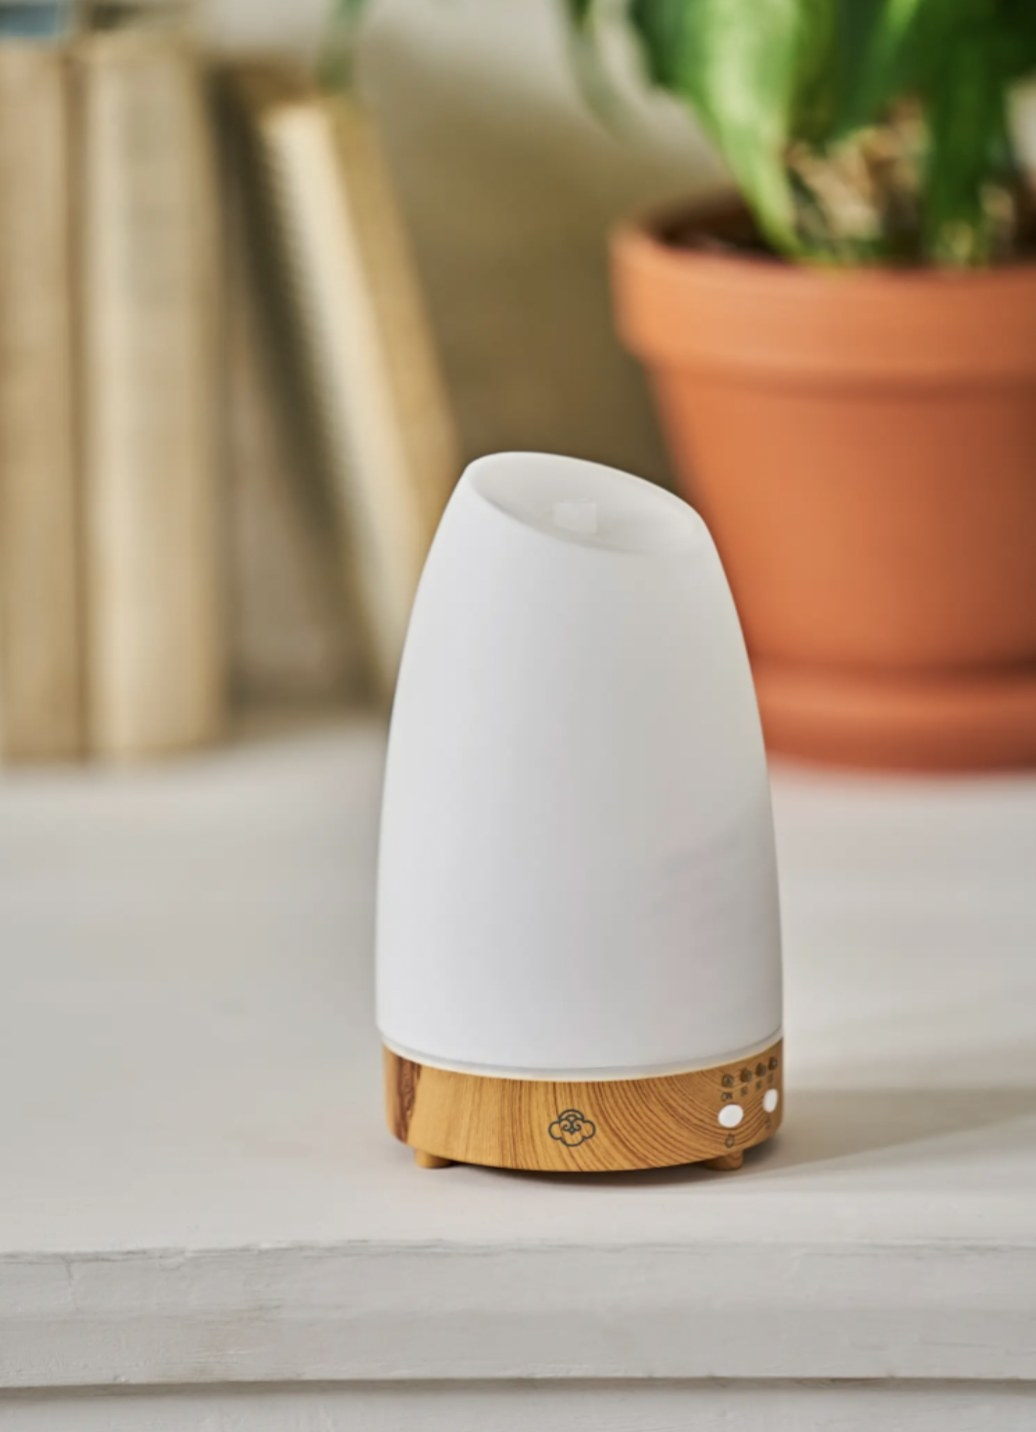 an aromatherapy diffuser with a white body and a wooden base resting on a ledge in front of books and a plant